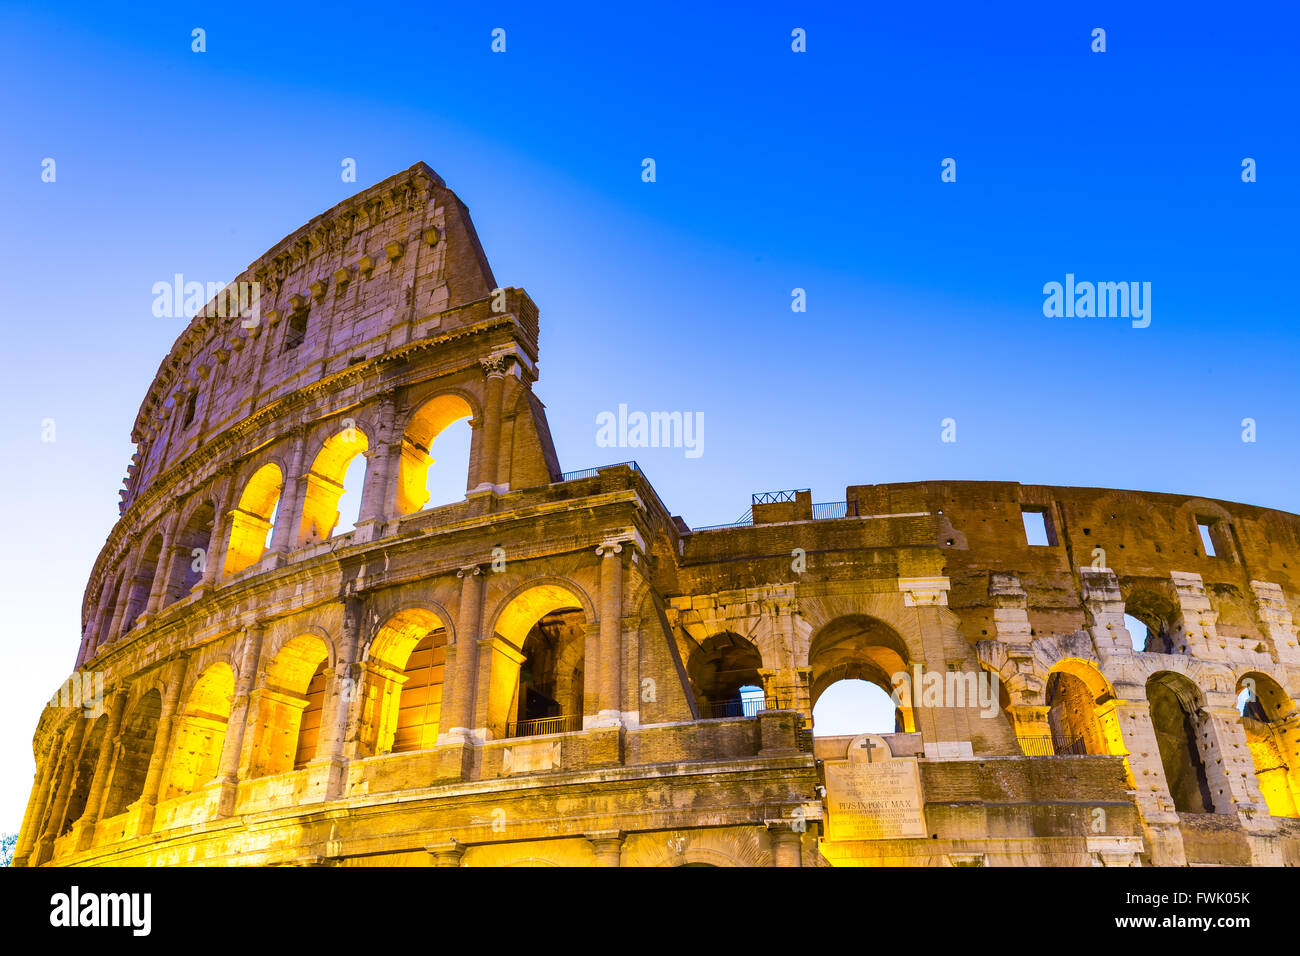 The Close up view of Colosseum in Rome, Italy. - Stock Image